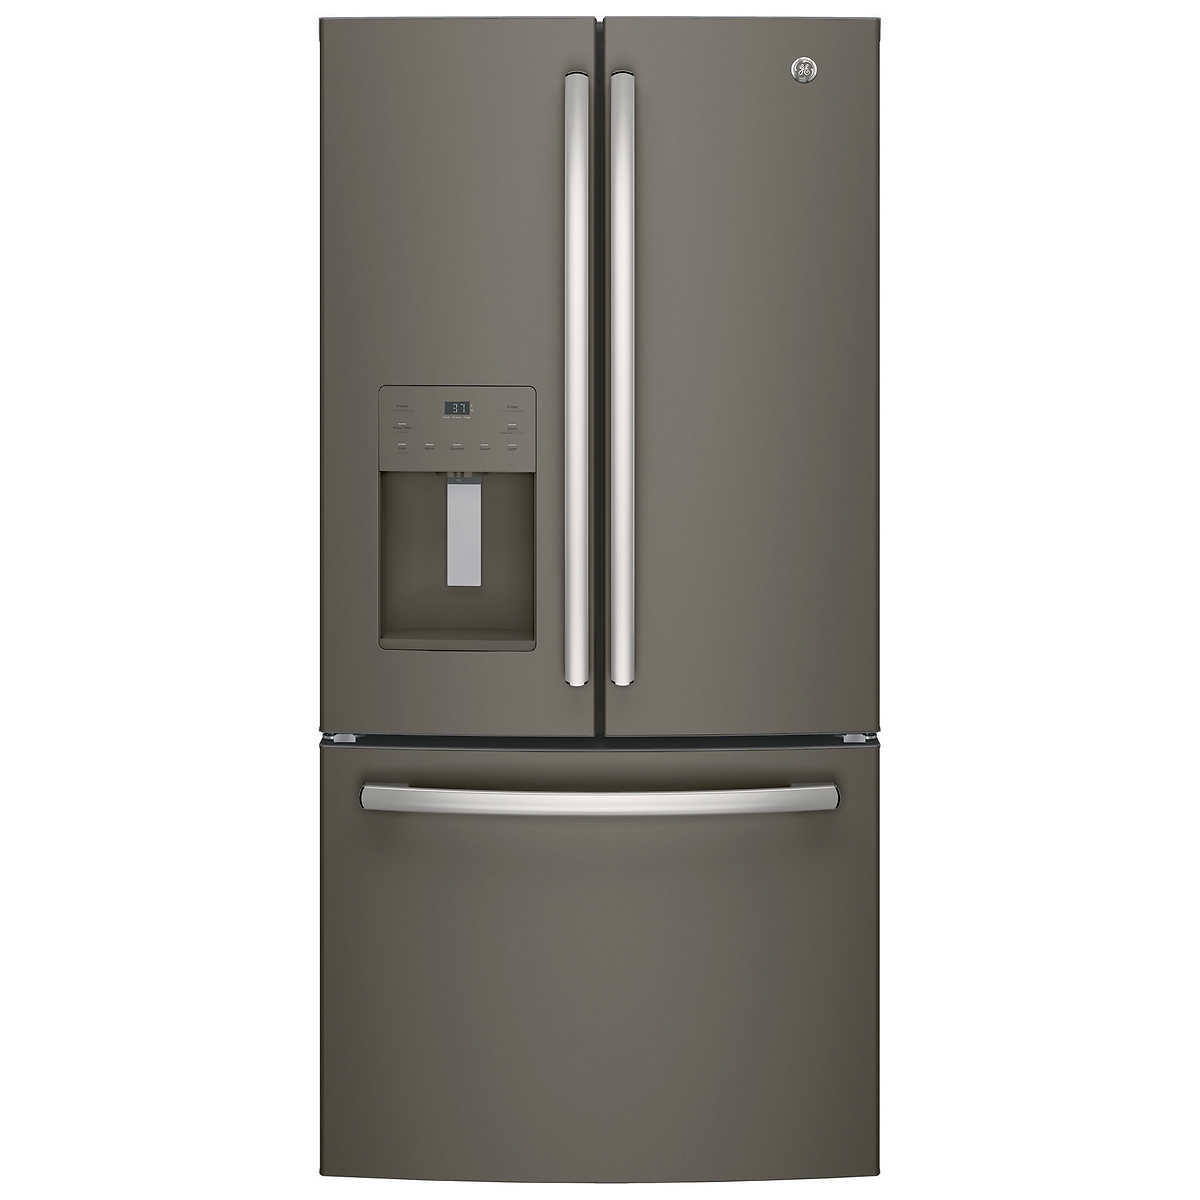 Ge 30 inch side by side white refrigerator - Ge 23 8 Cuft 33 Inch Wide 3 Door French Door Refrigerator In Slate